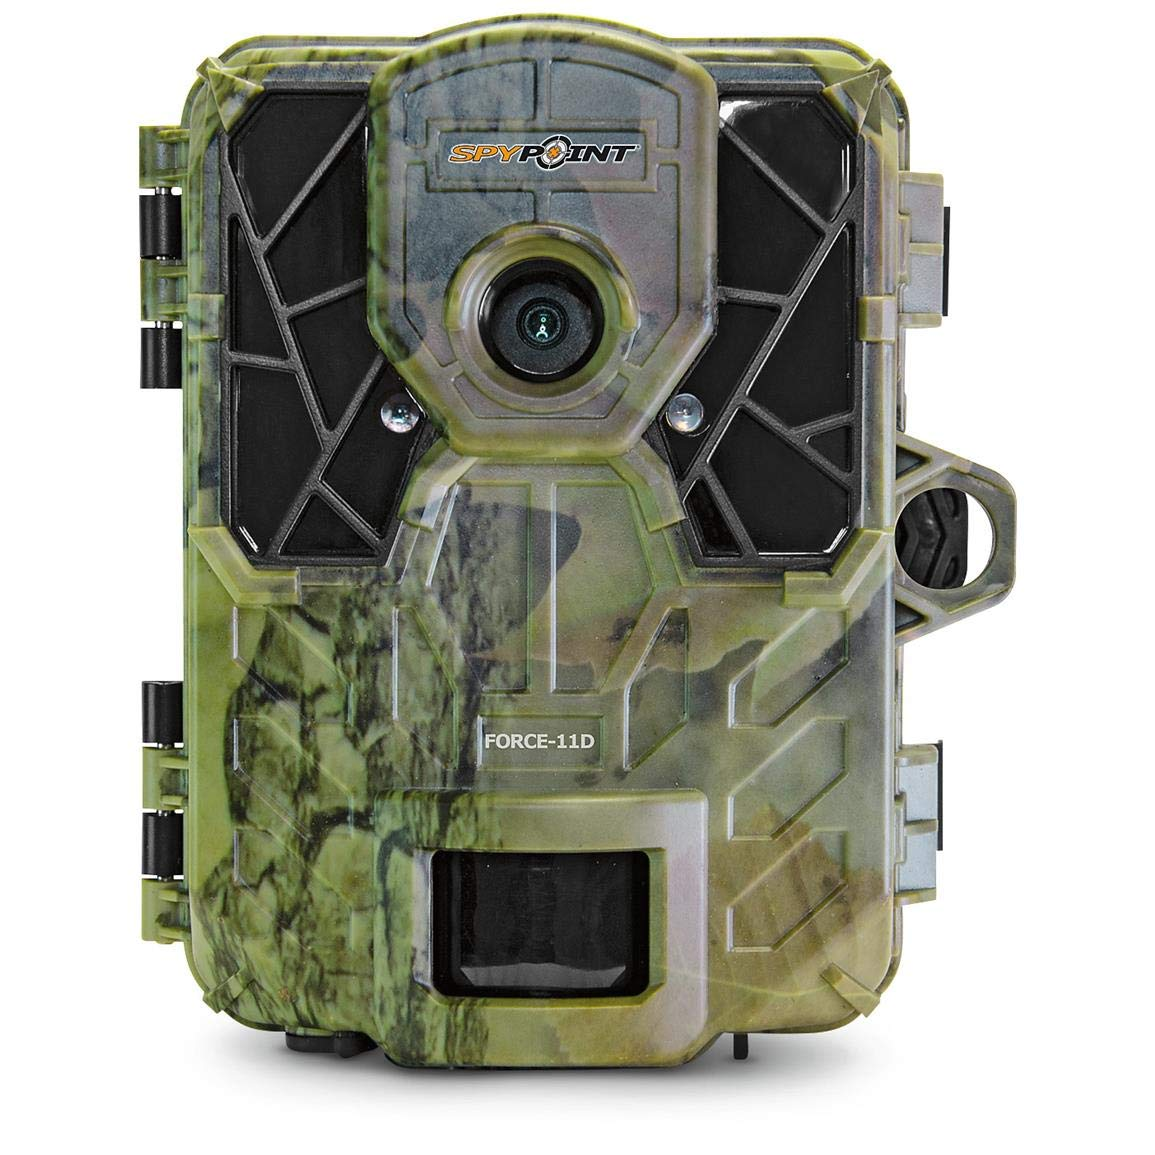 1007243 Spypoint Force 11D Trail Camera-11MP HD-Camo